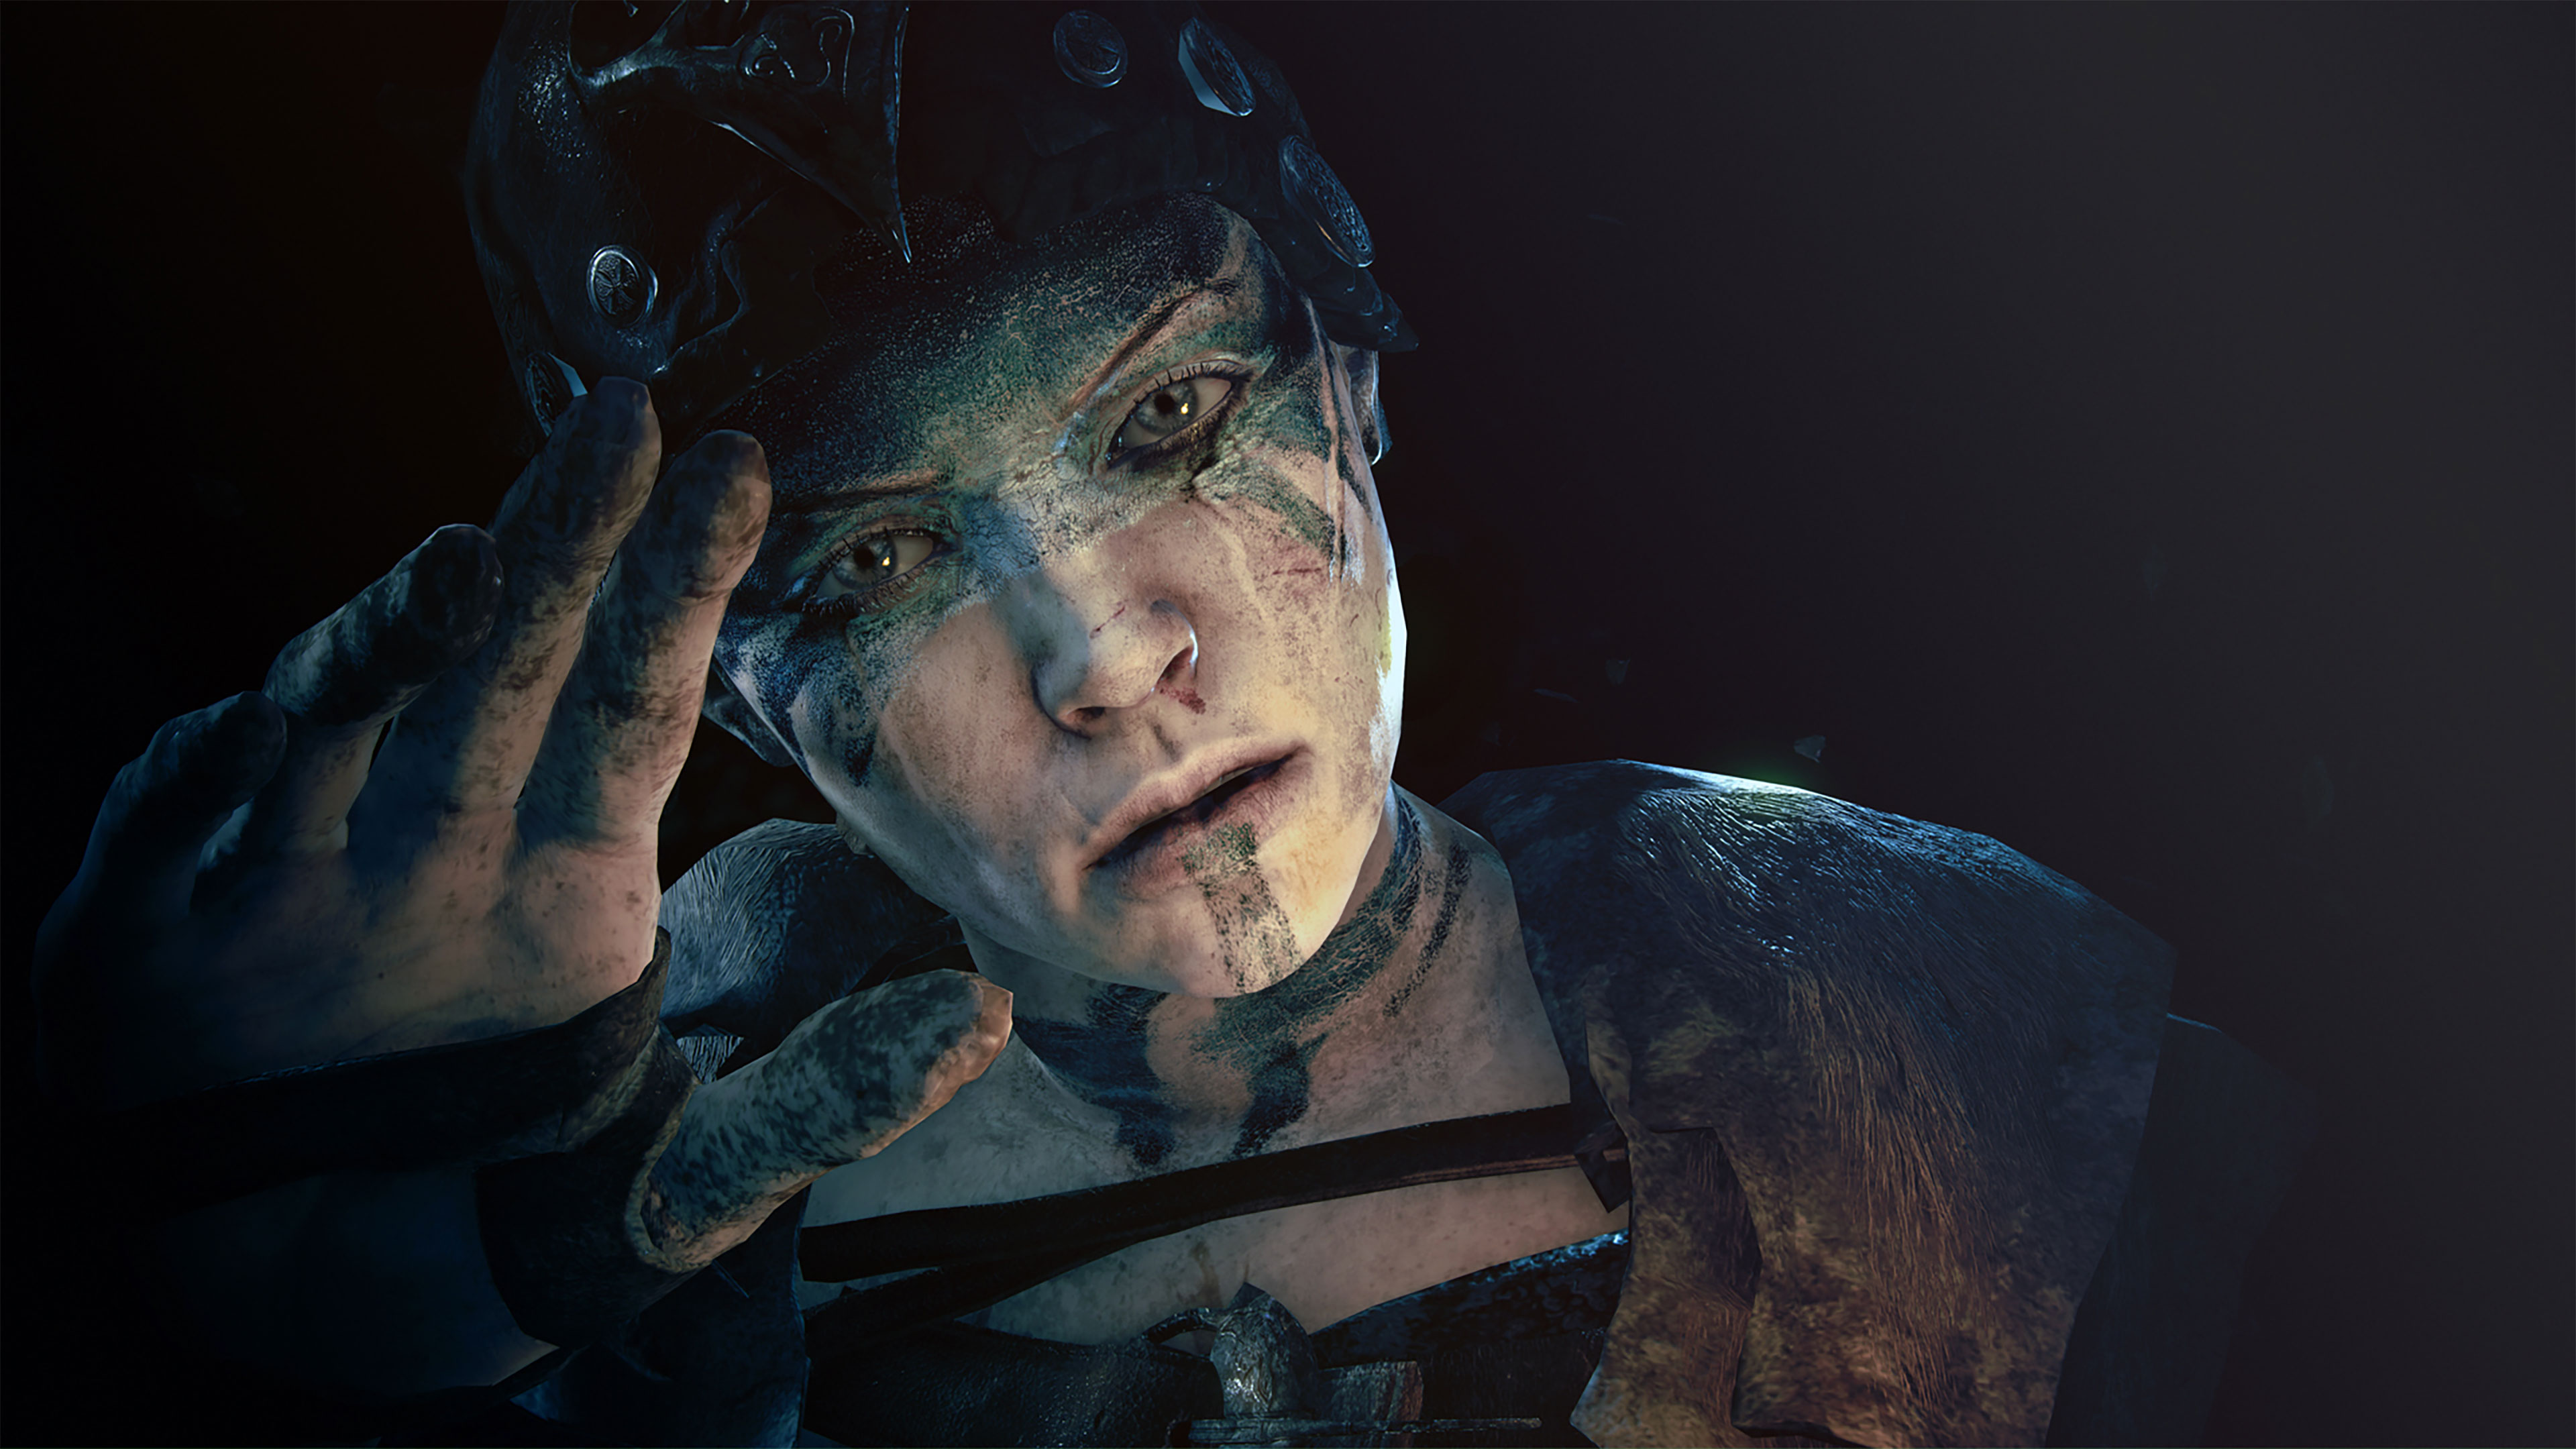 Hellblade Senua S Sacrifice Wallpapers In Ultra Hd 4k Gameranx